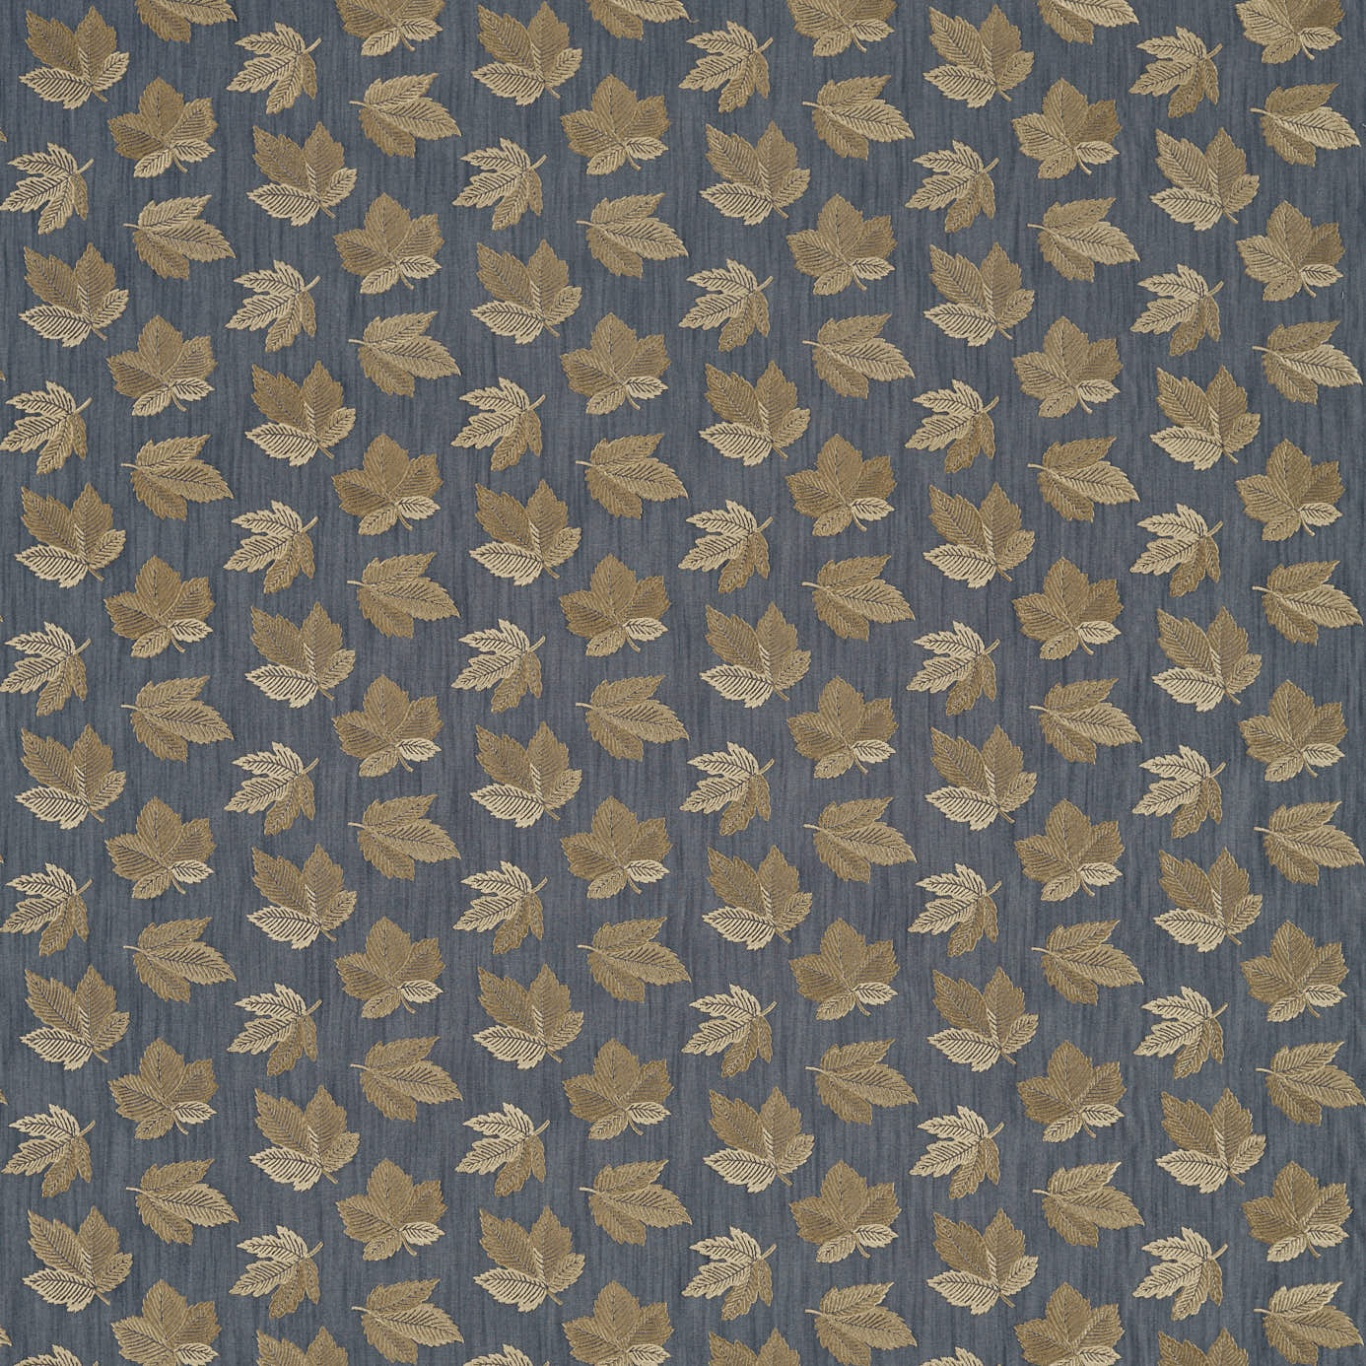 Image of Sanderson Flannery Fig/Copper Curtain Fabric 236726